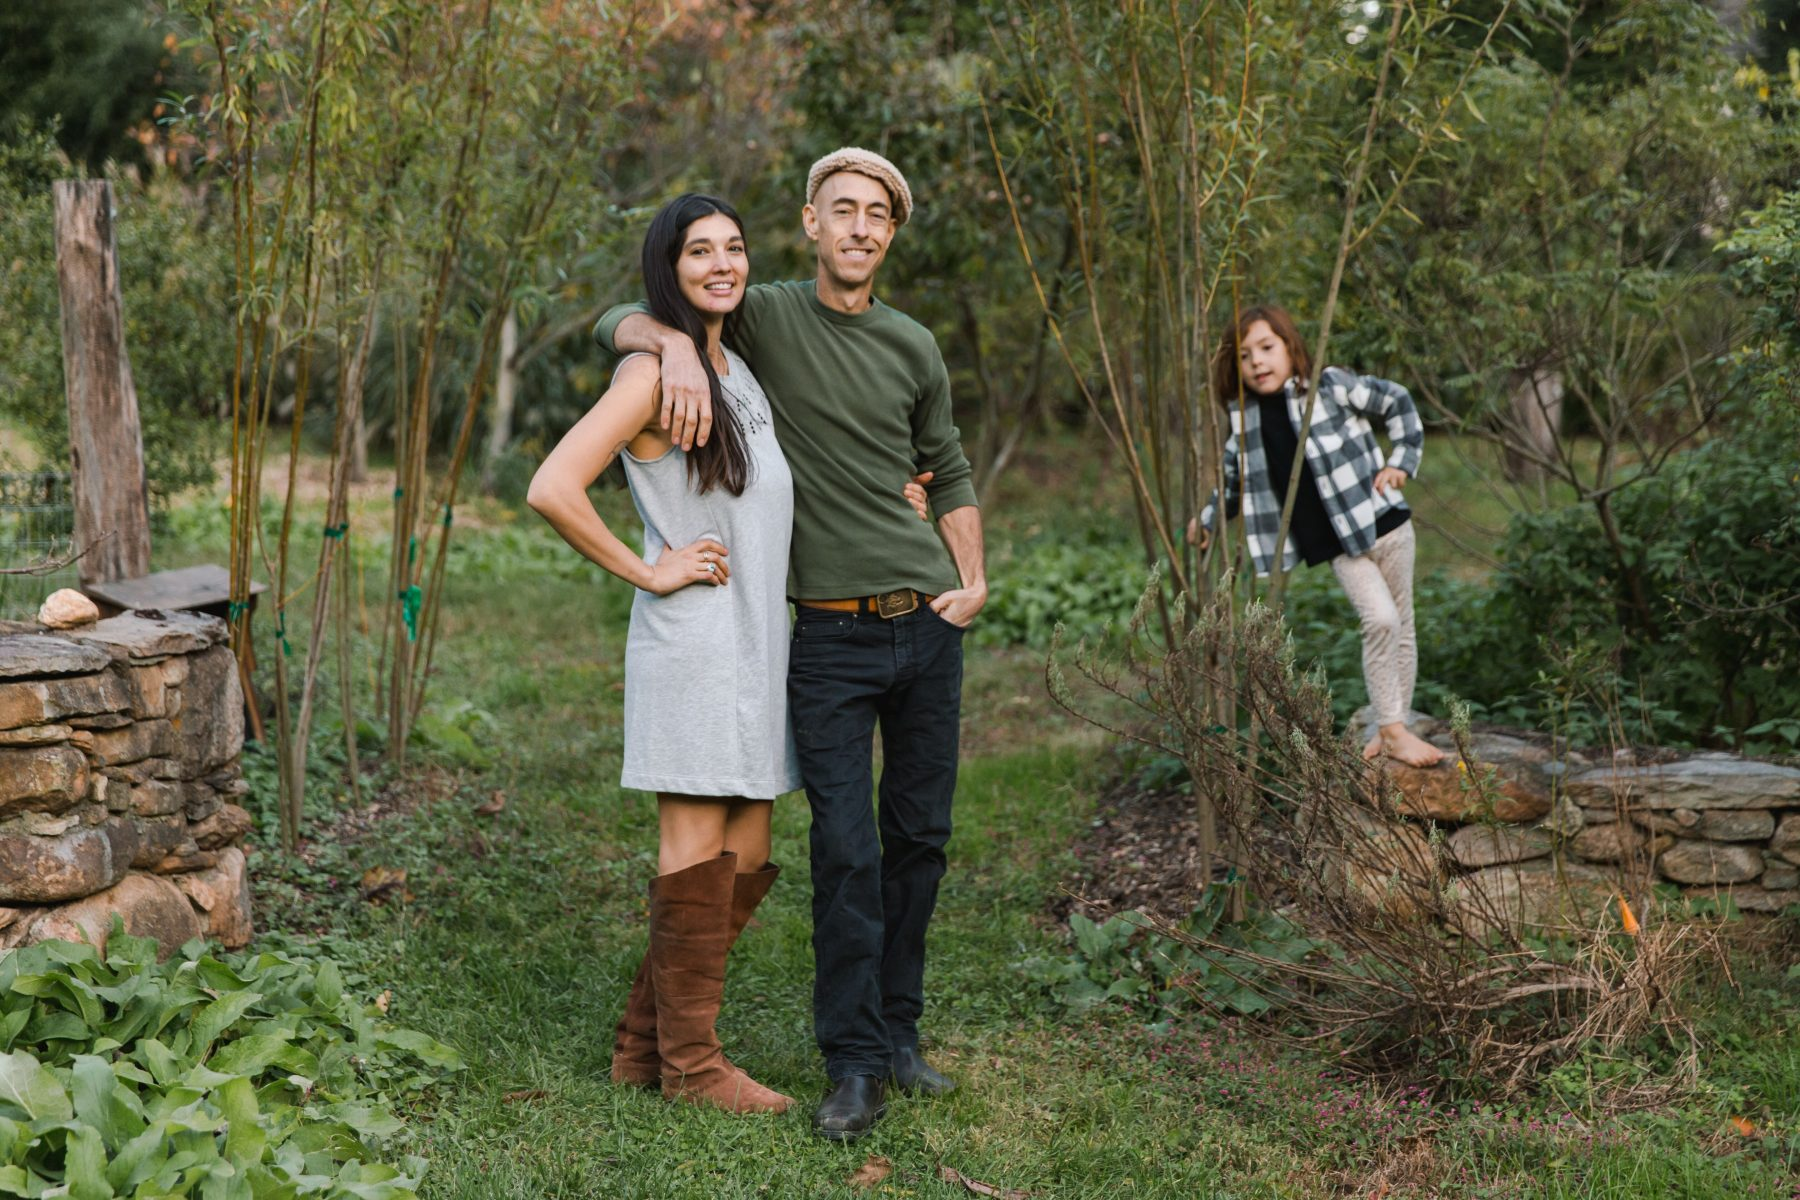 Practical Permaculture Weekend Intensive at the Sivananda Yoga Ranch